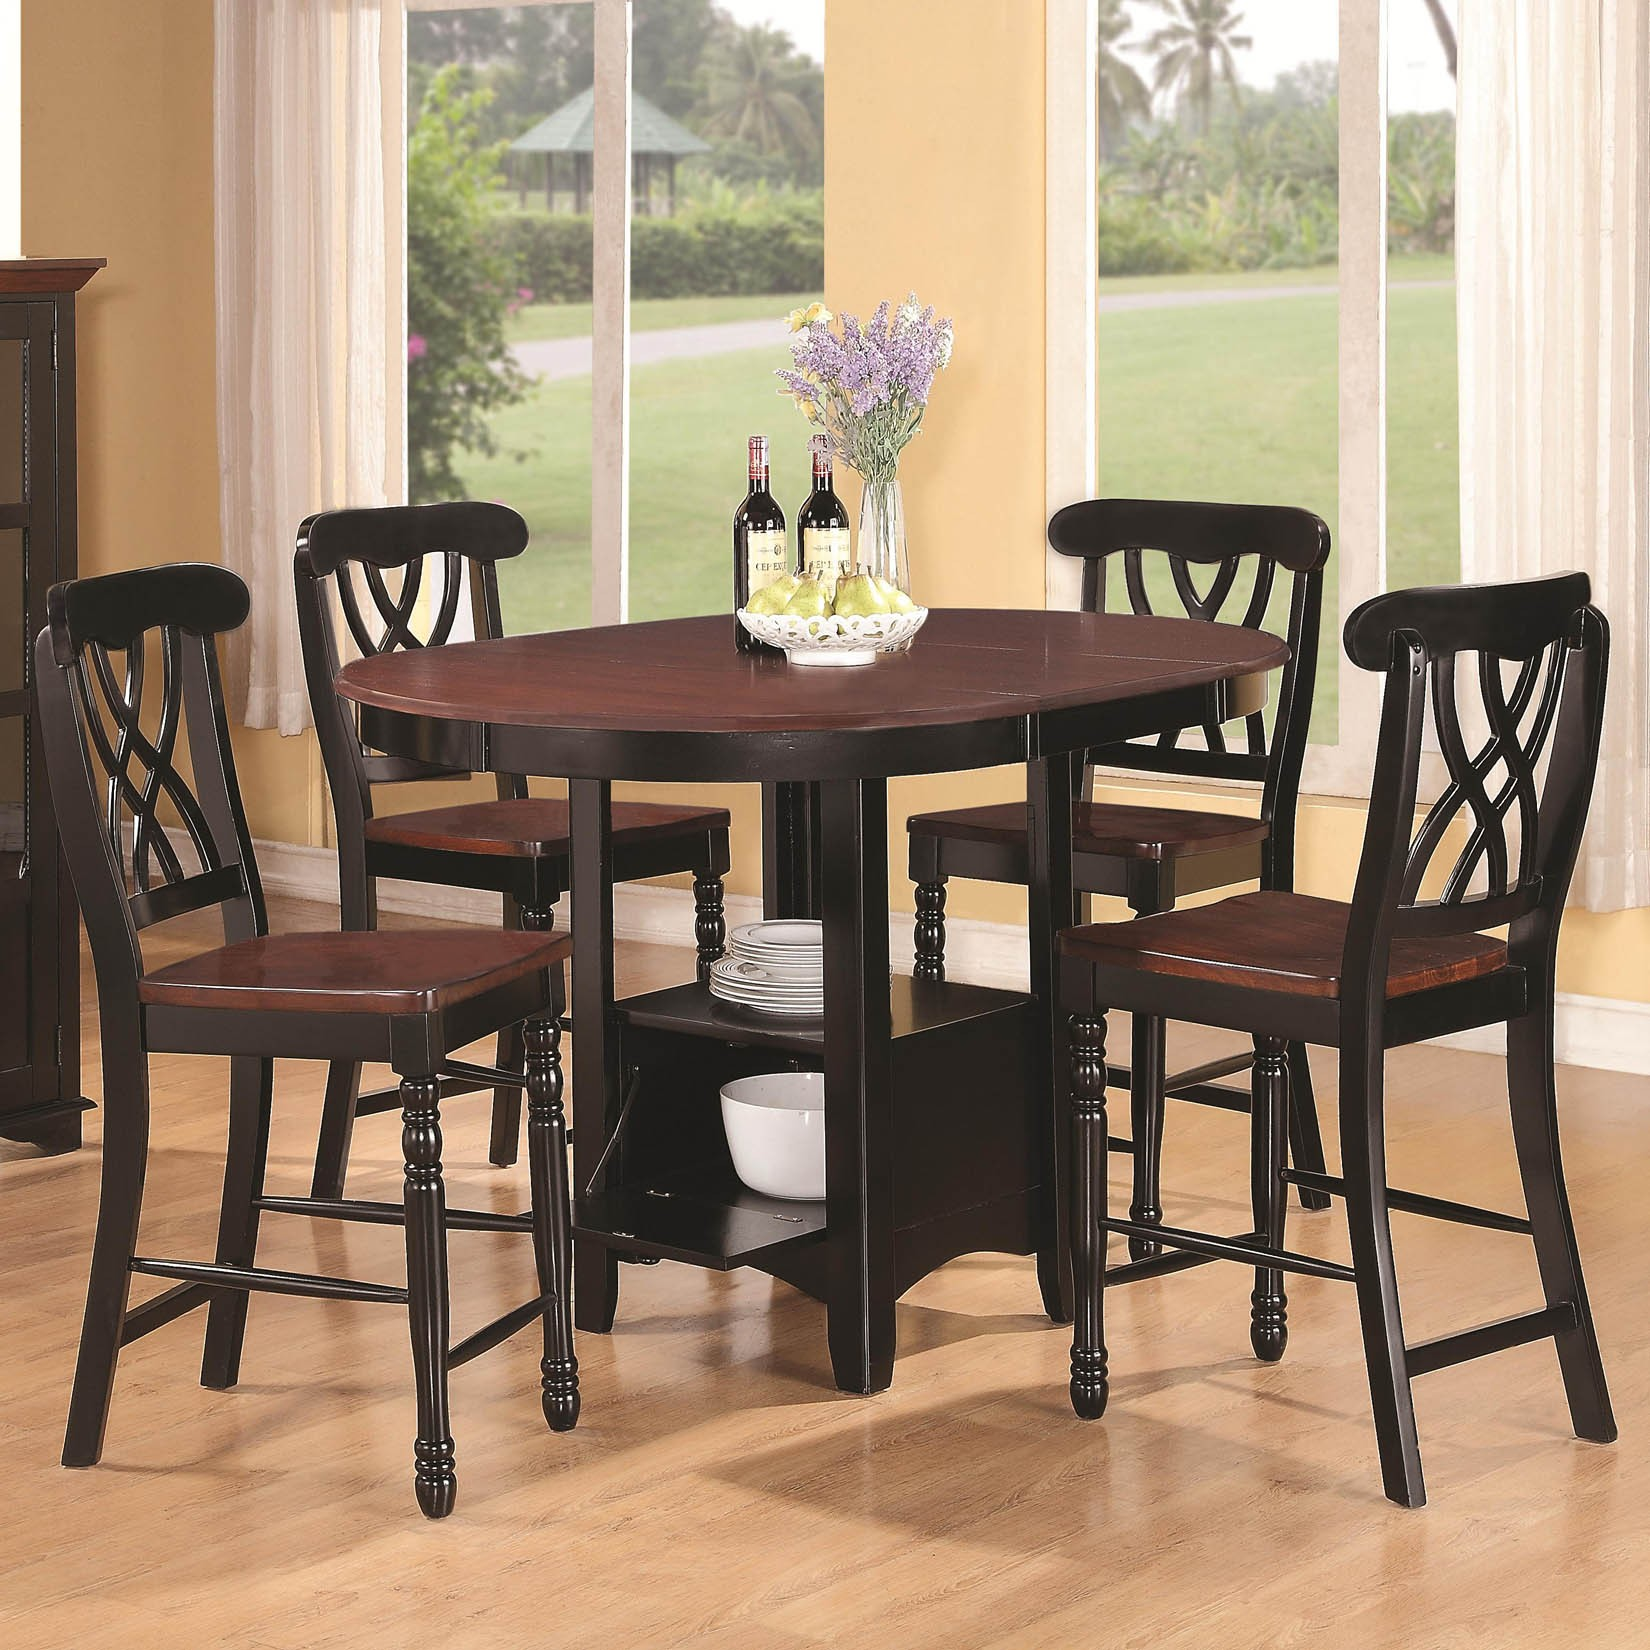 Adorable round dining room table sets for 4 homesfeed Round dining table set